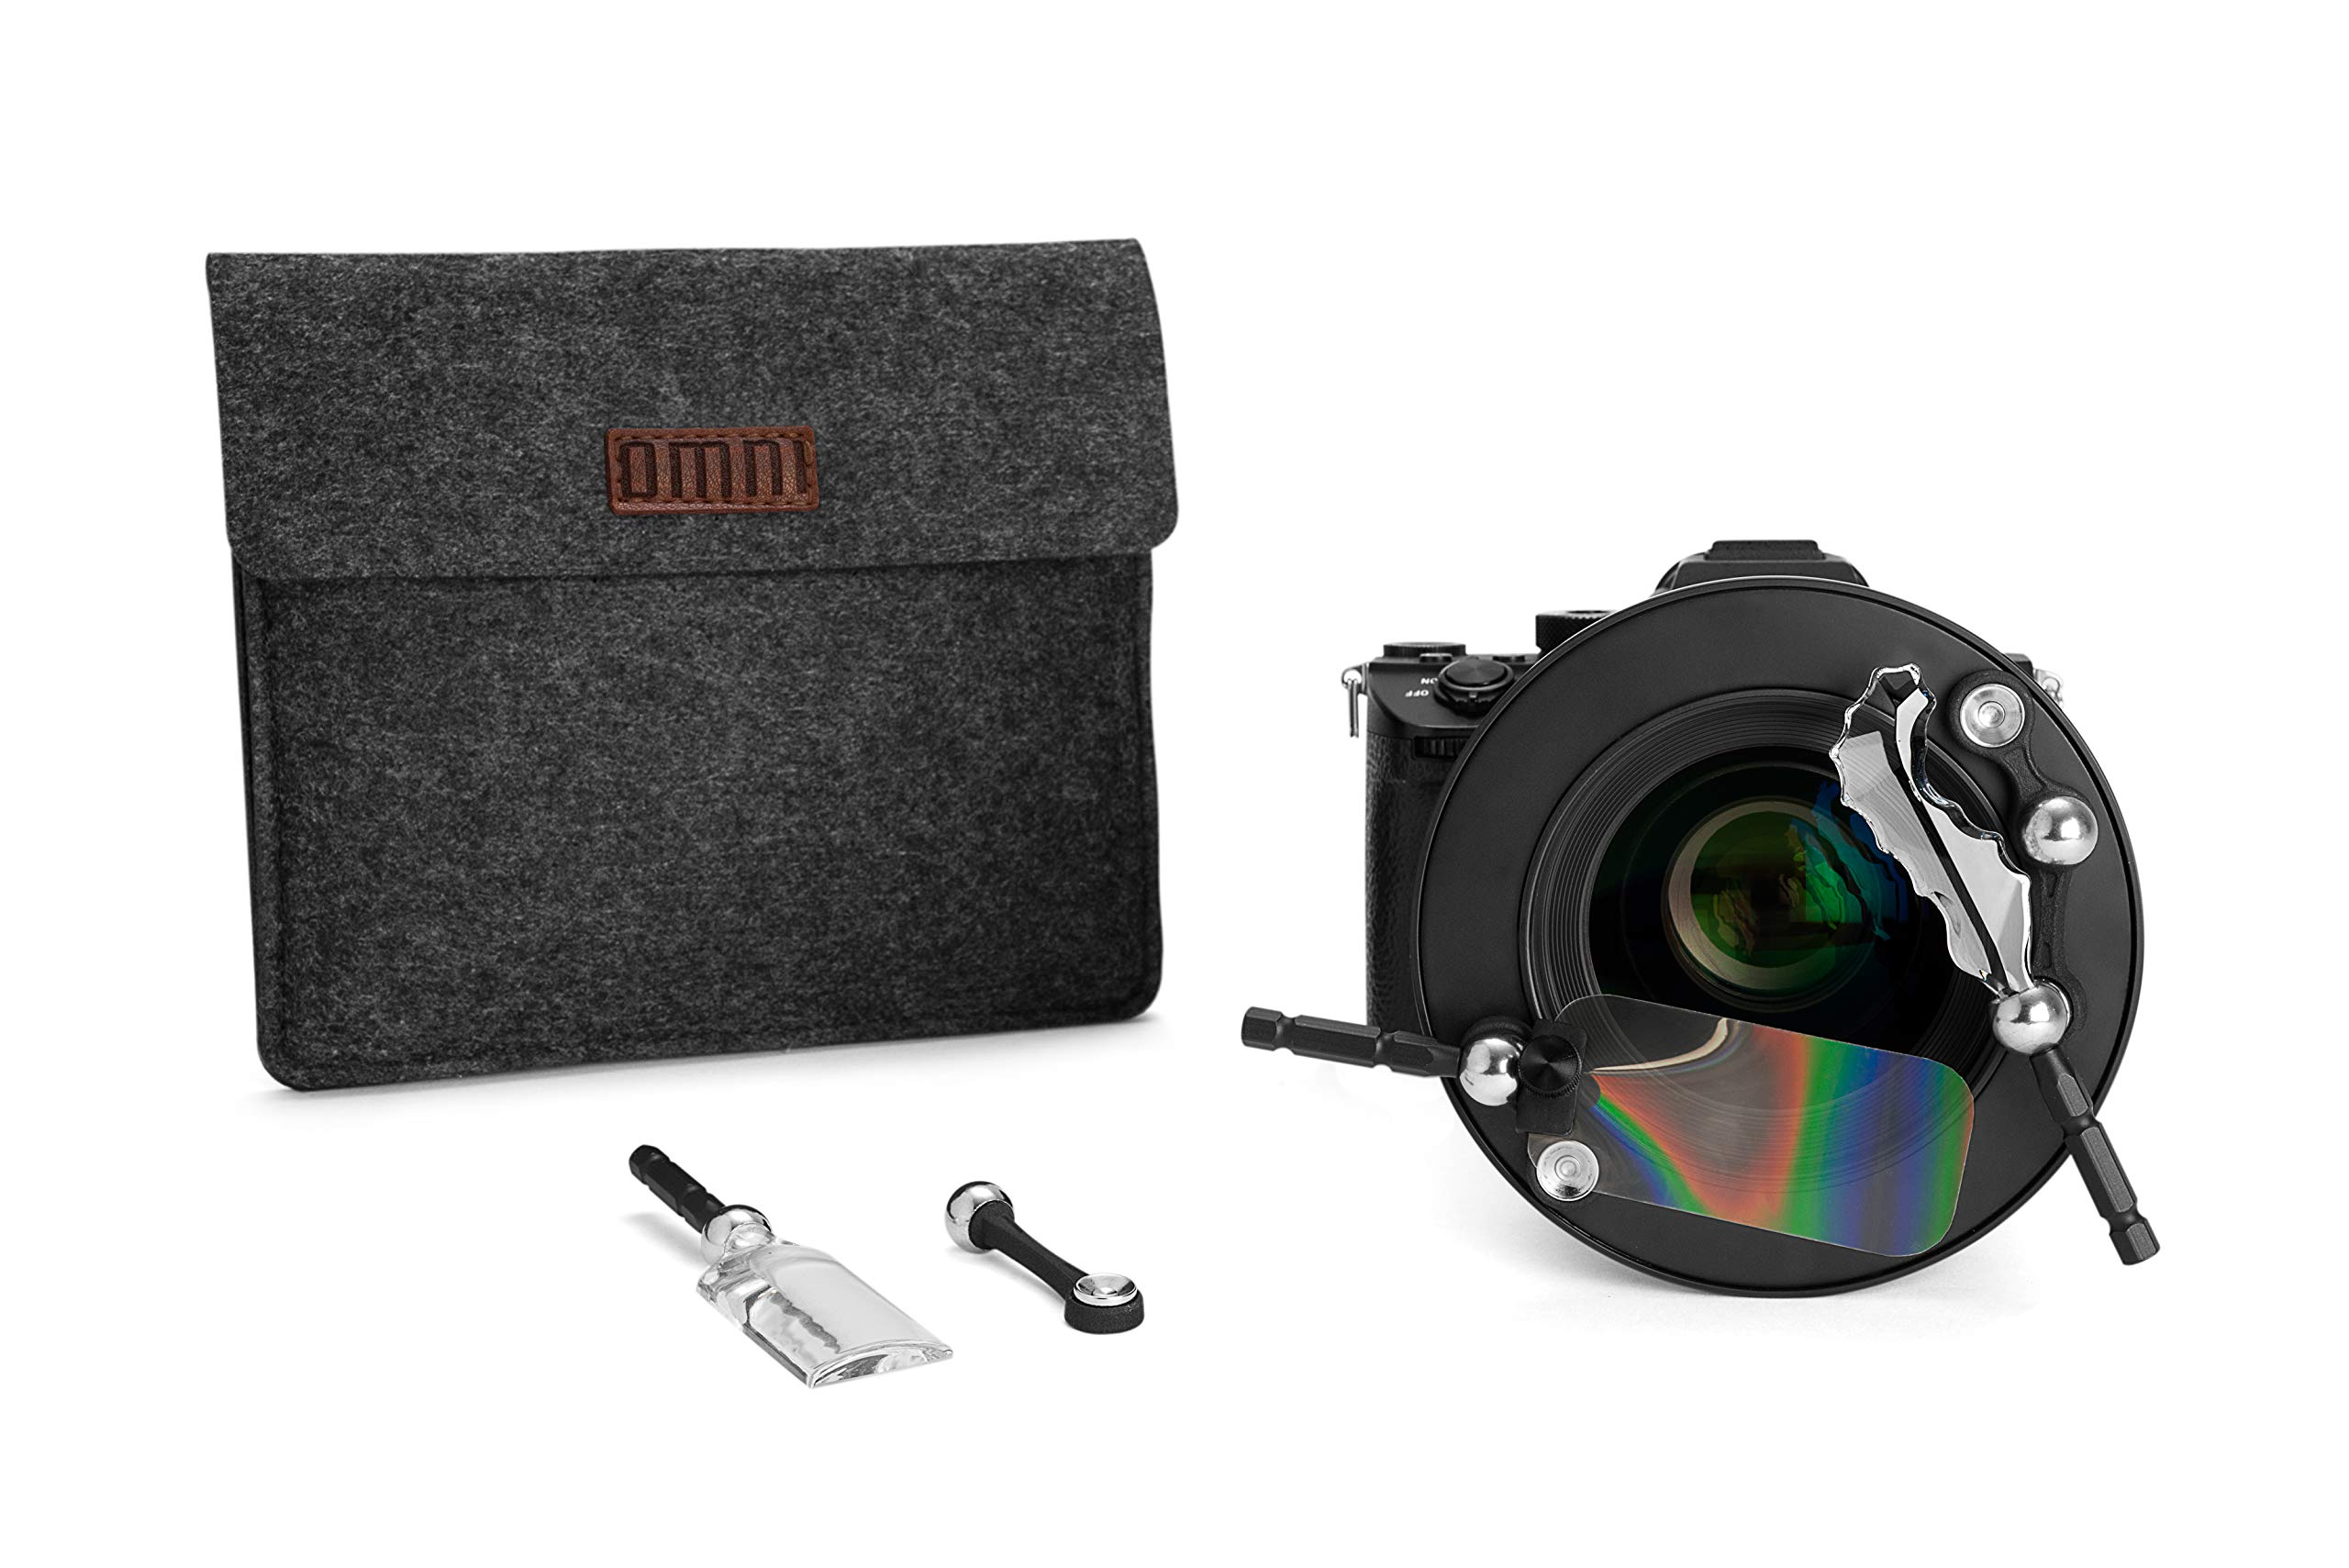 Omni Creative Filter System by Lensbaby (Large for Lens Thread Sizes 62-82mm) by Lensbaby